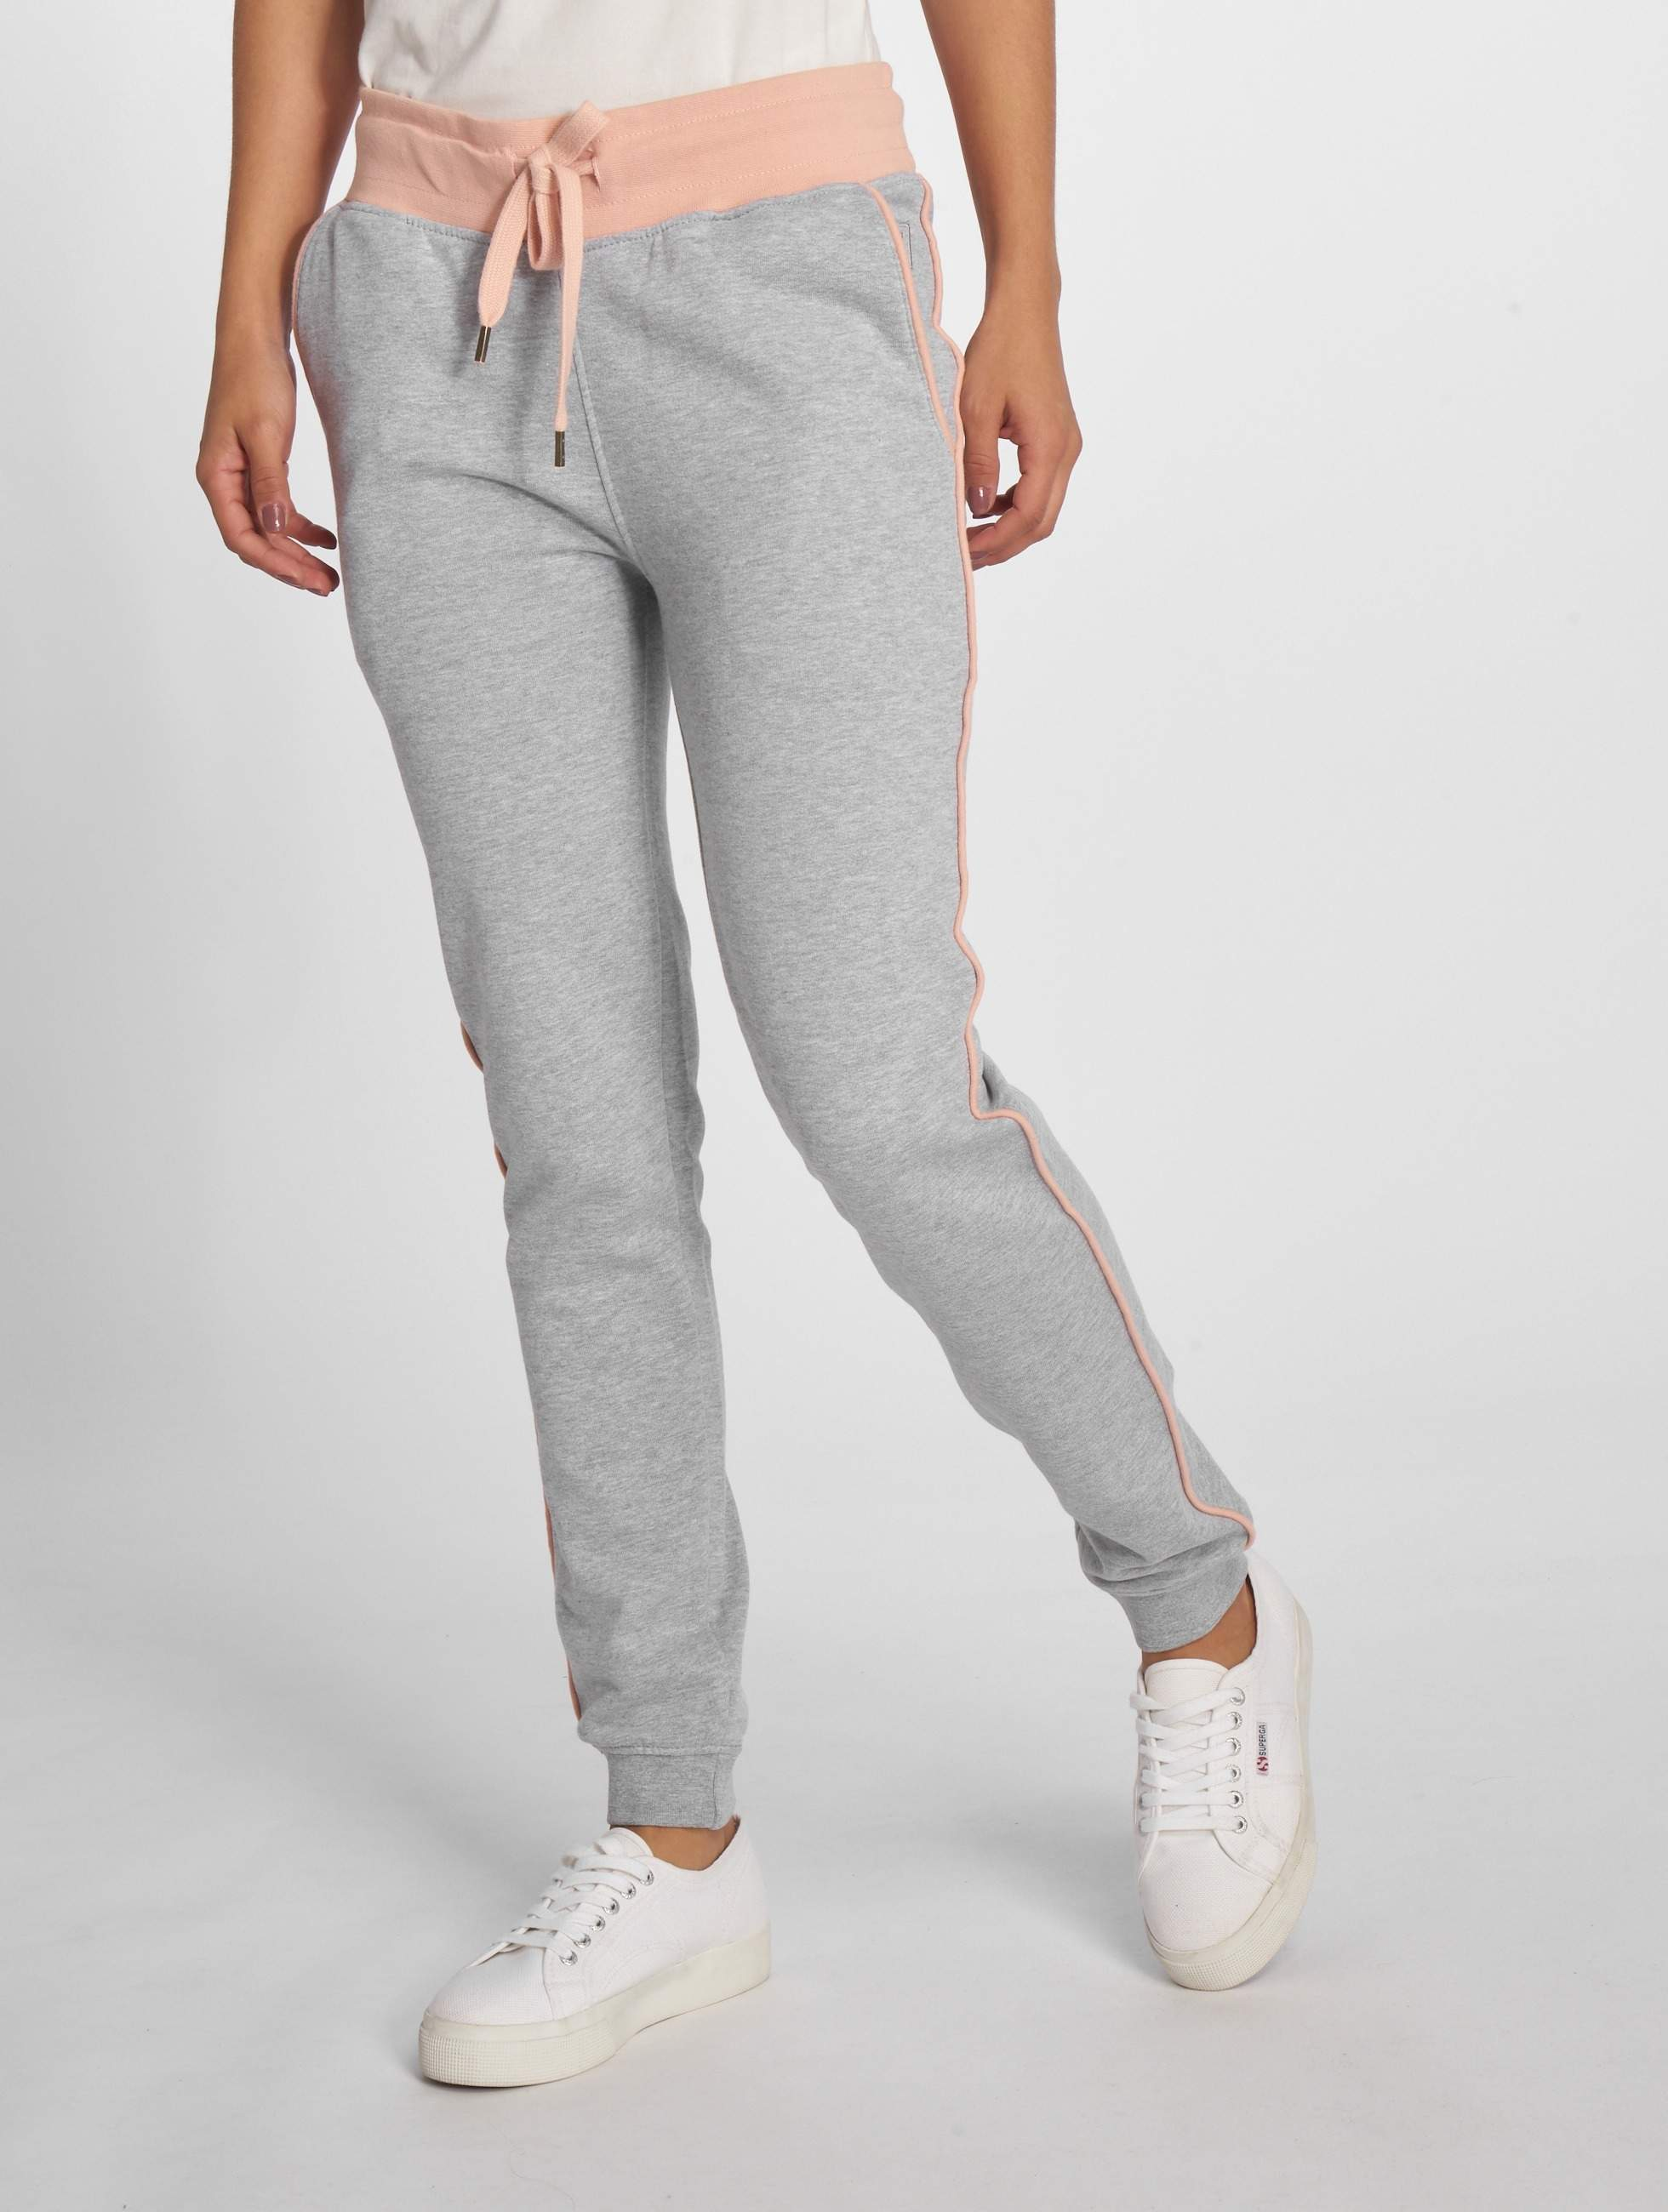 Cyprime / Sweat Pant Meitnerium in grey XS